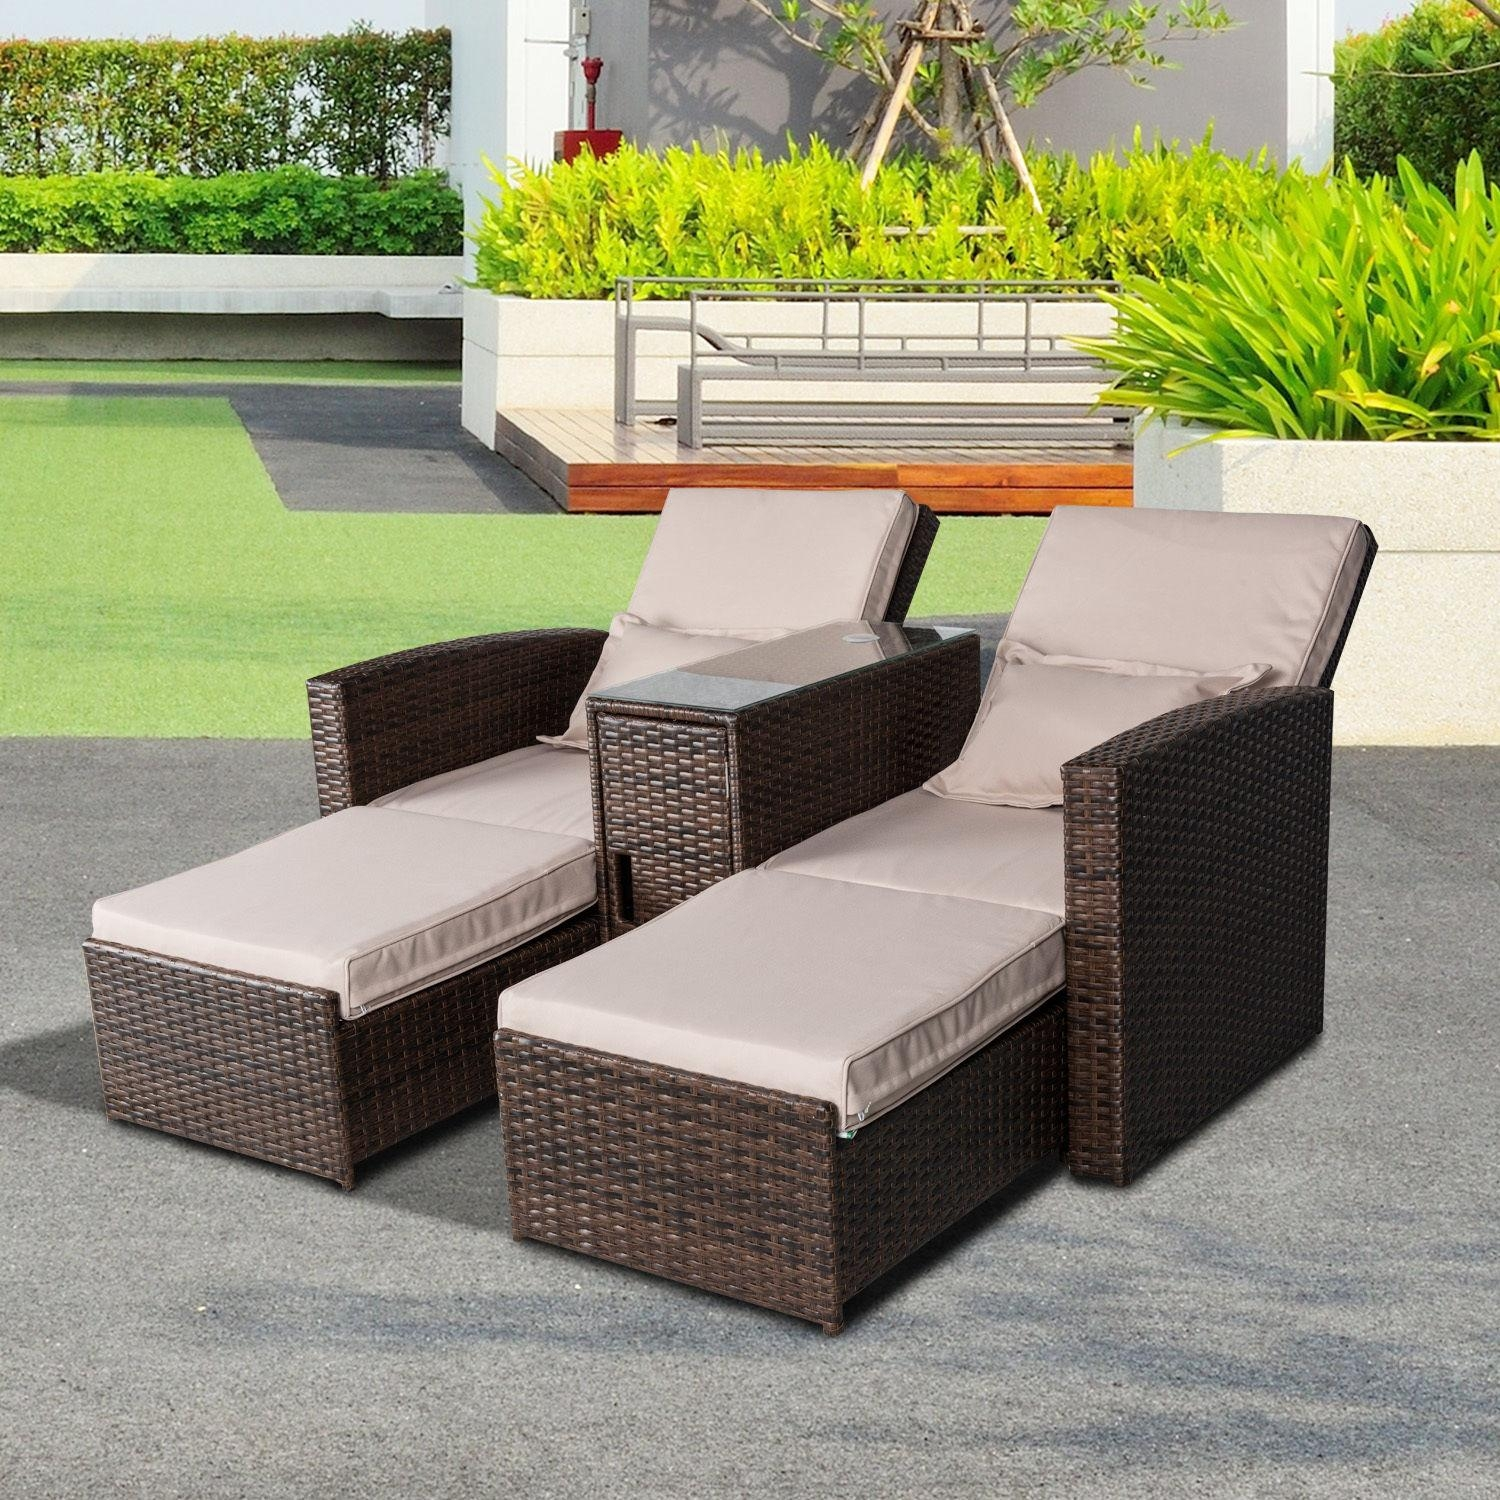 Sofas : Fabulous Patio Furniture Sets Black Wicker Outdoor With Modern Rattan Sofas (Image 20 of 23)